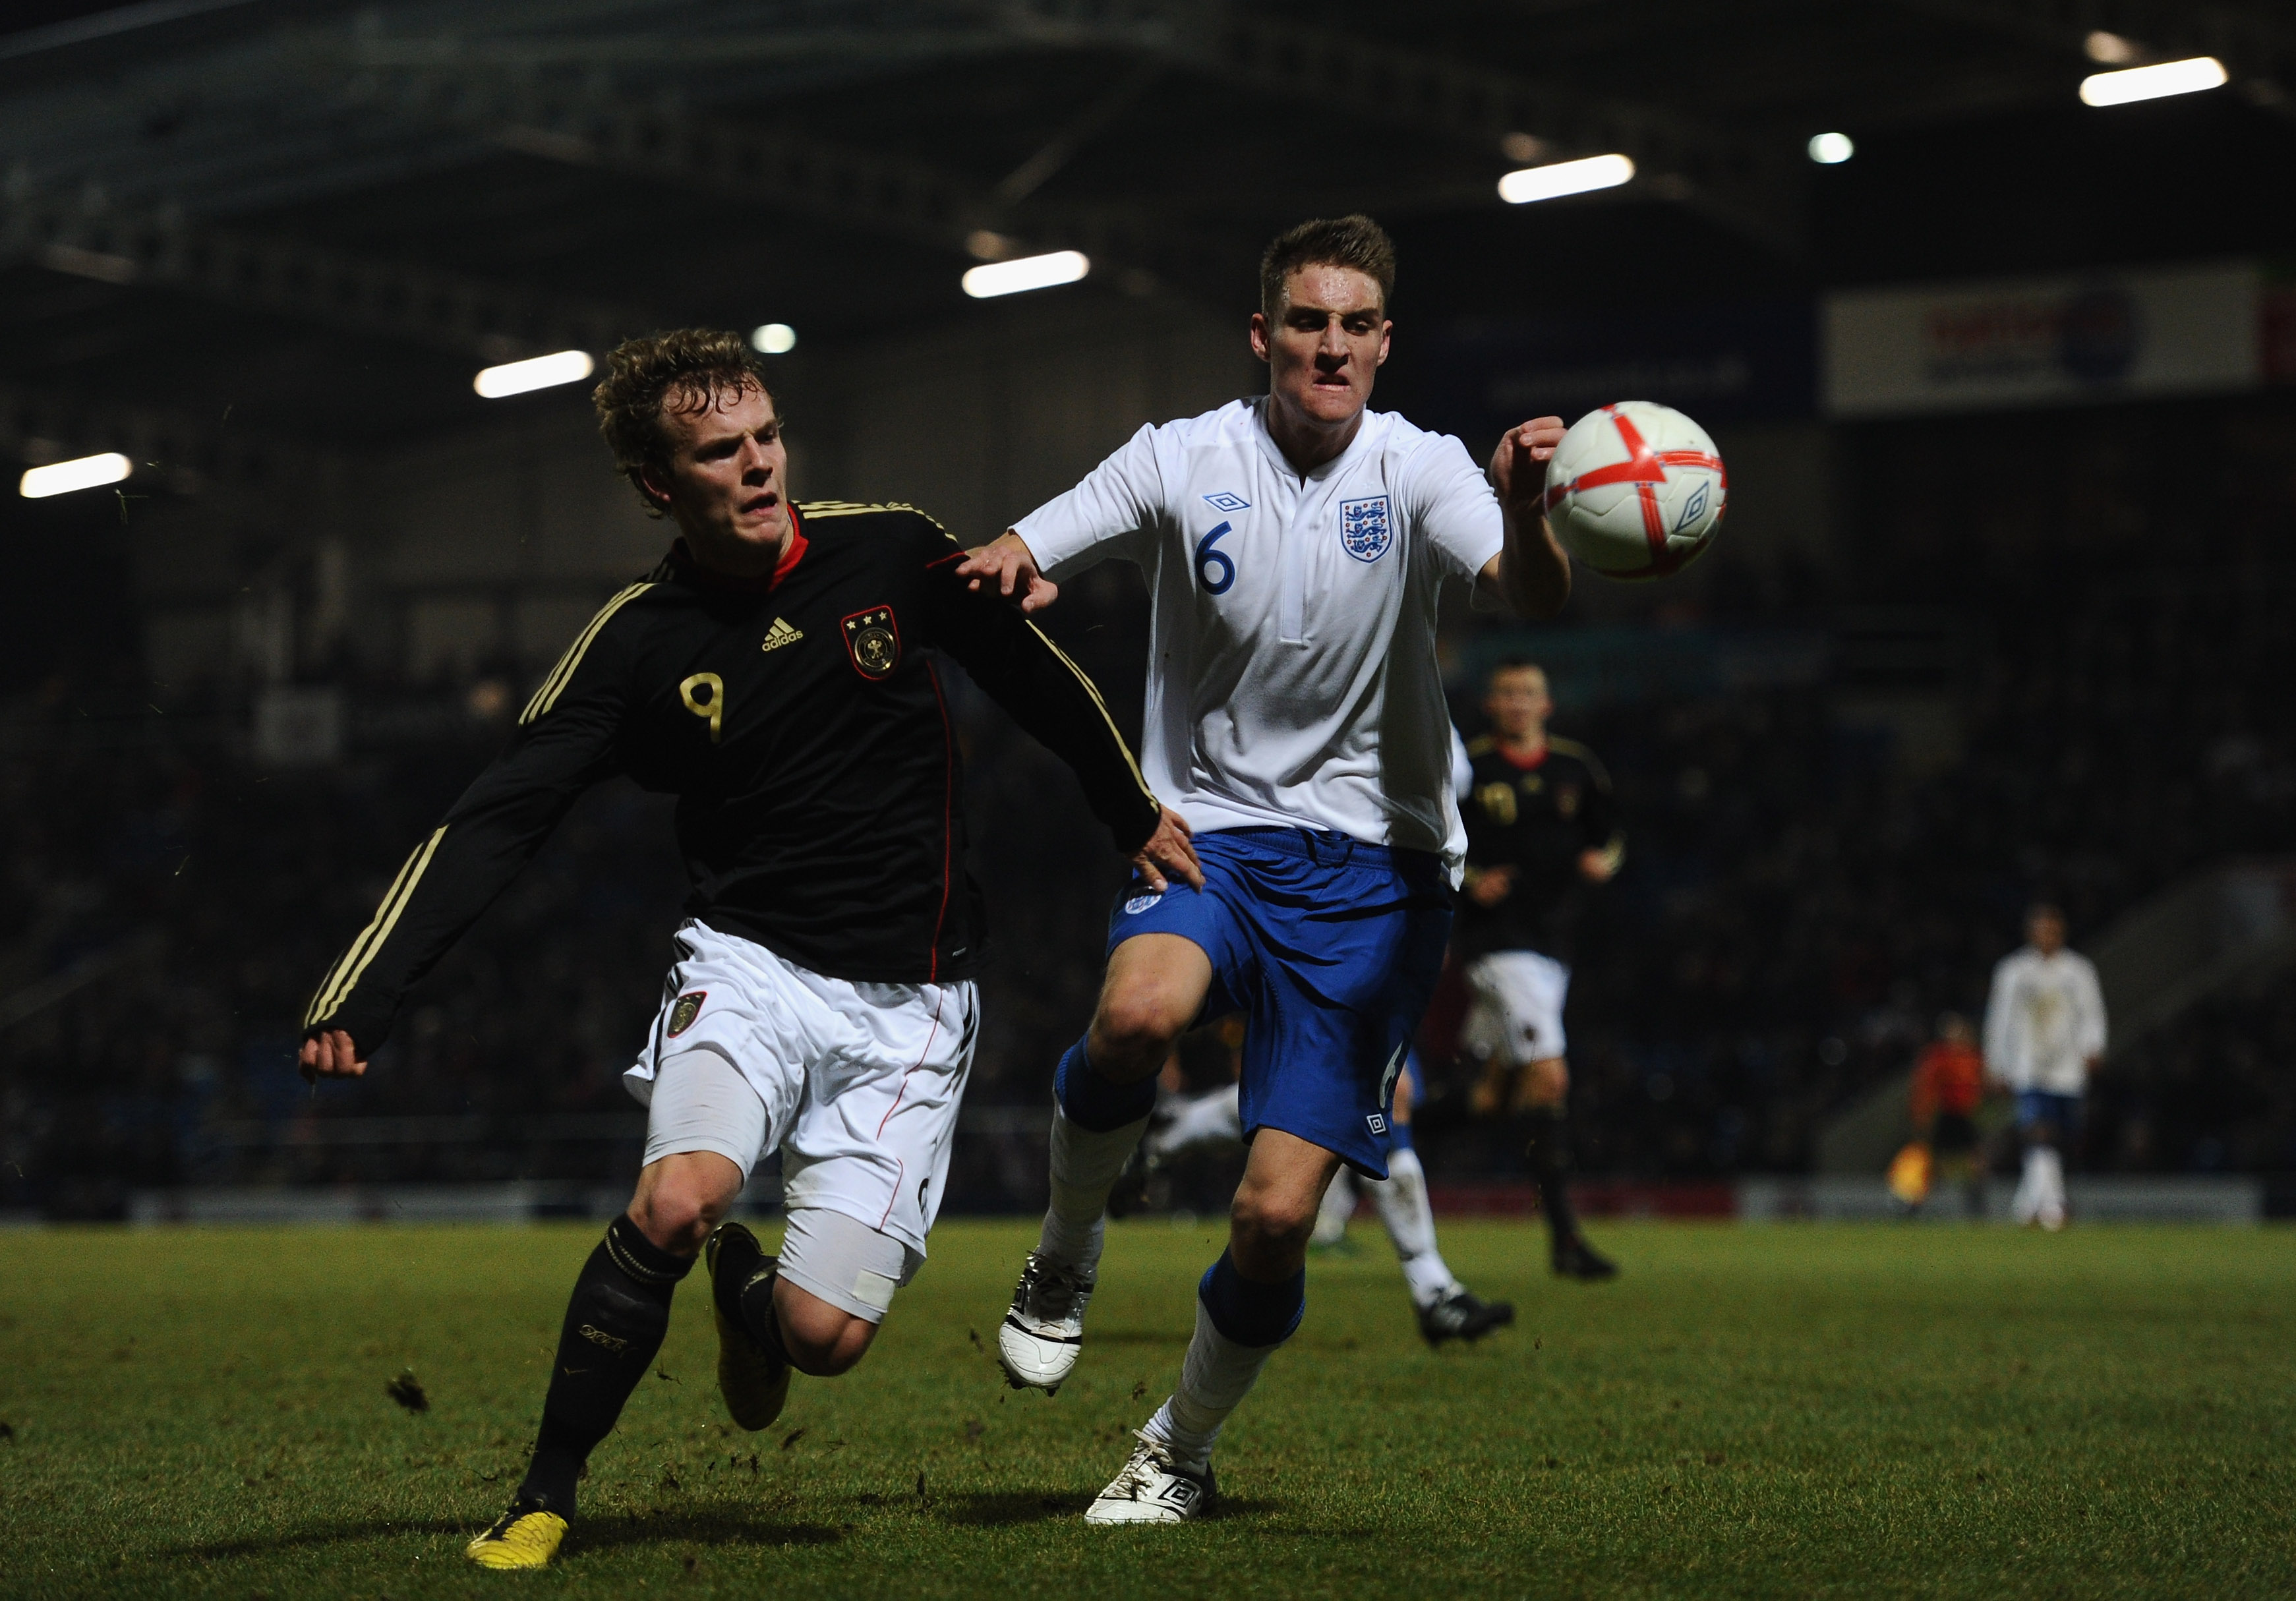 CHESTERFIELD, ENGLAND - FEBRUARY 08:  Lennart Thy of Germany battles with George Taft of England during the International Friendly match between England U19 and Germany U19 at the B2NET Stadium on February 8, 2011 in Chesterfield, England.  (Photo by Laur